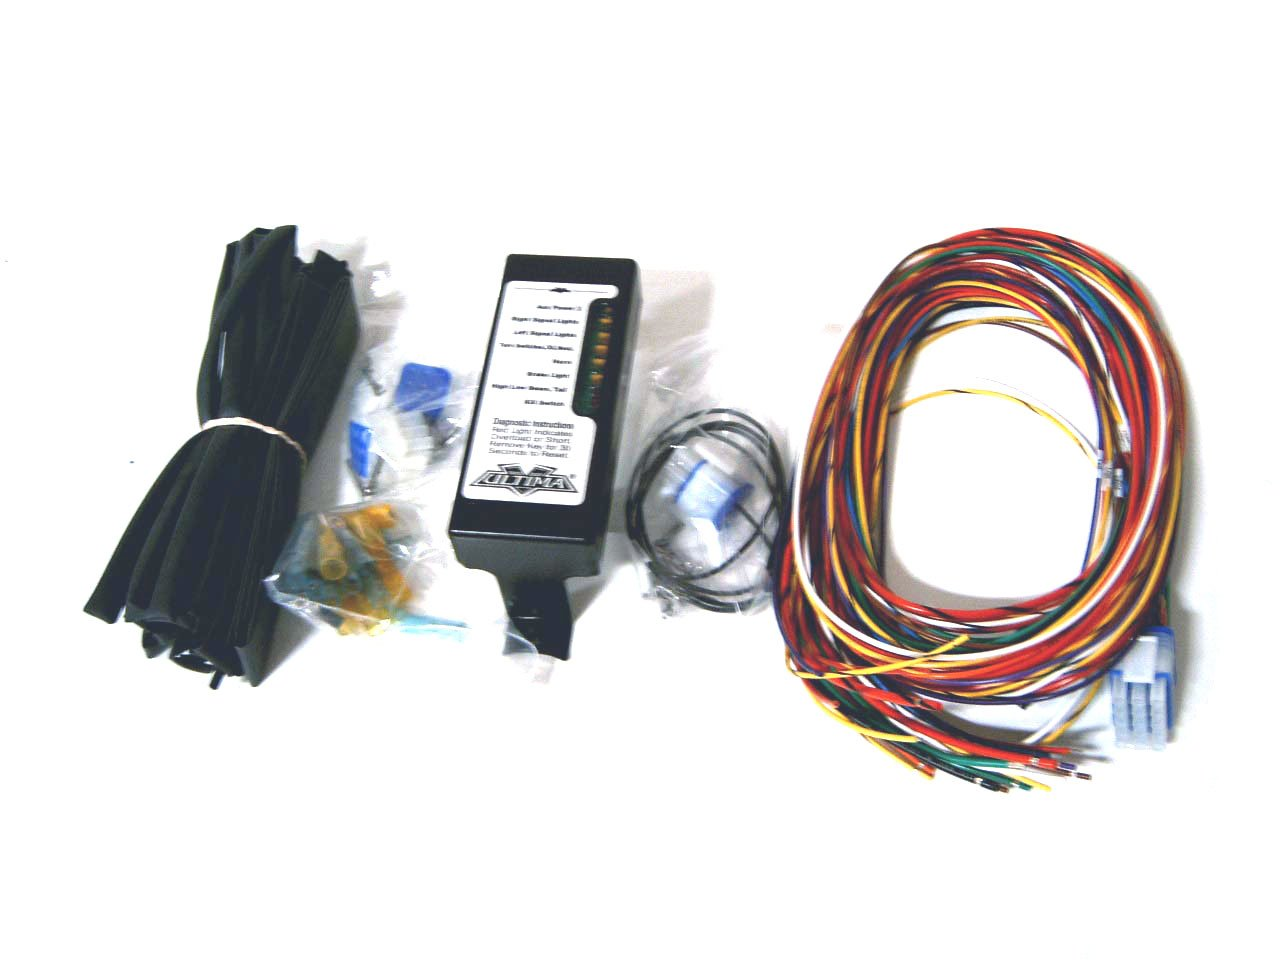 61DV2Bq5%2BHL._SL1280_ amazon com ultima complete wiring harness kit for harley davidson harley wiring harness kits at reclaimingppi.co